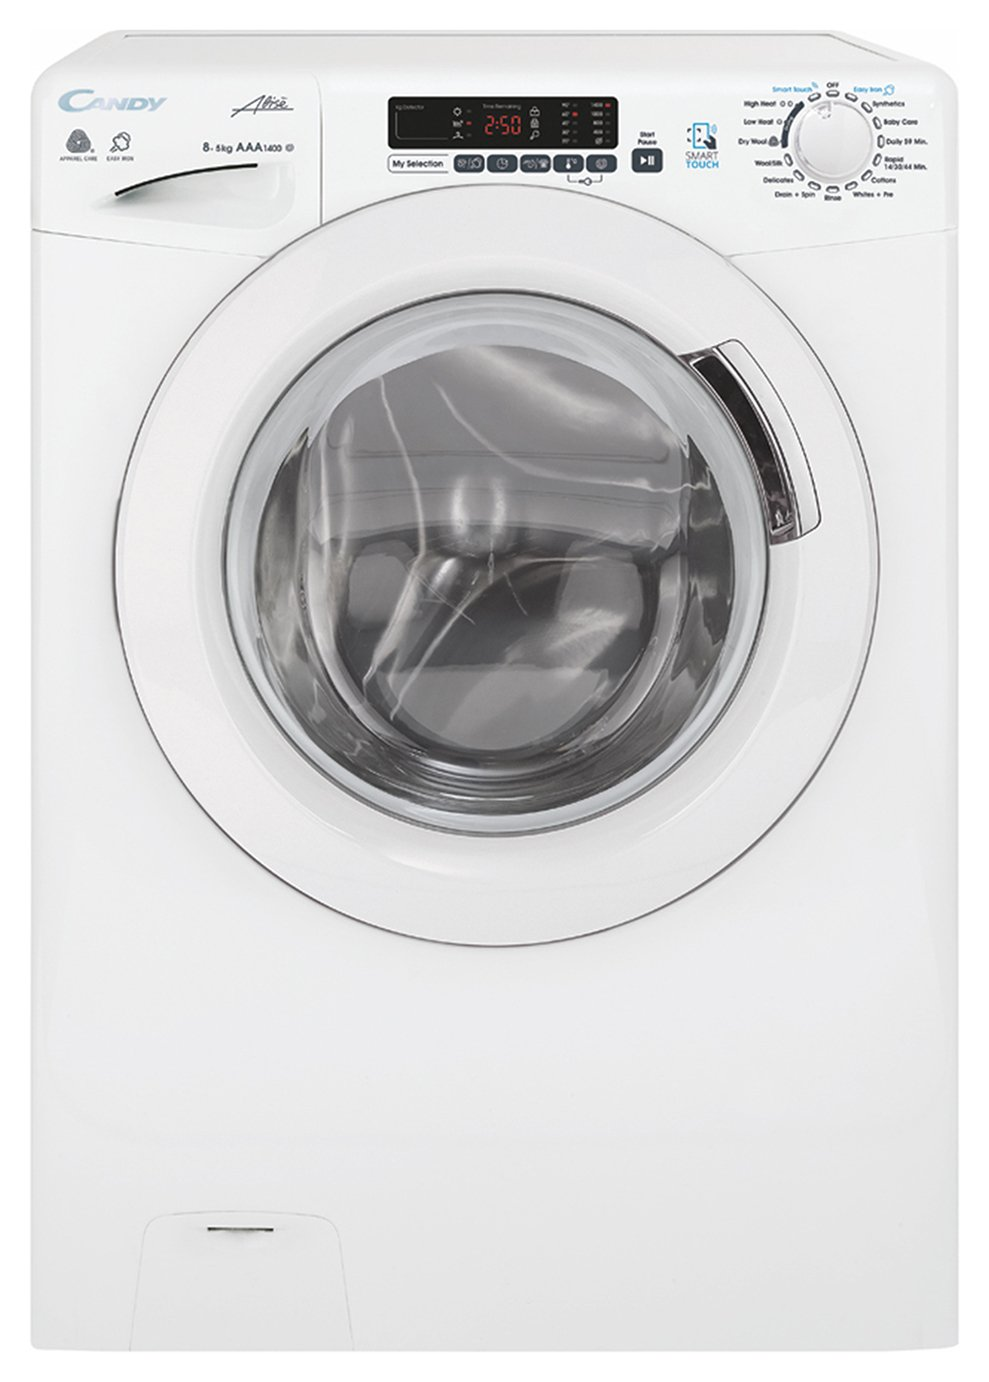 Candy GVSW485DC 8 / 5KG 1400 Spin Washer Dryer review